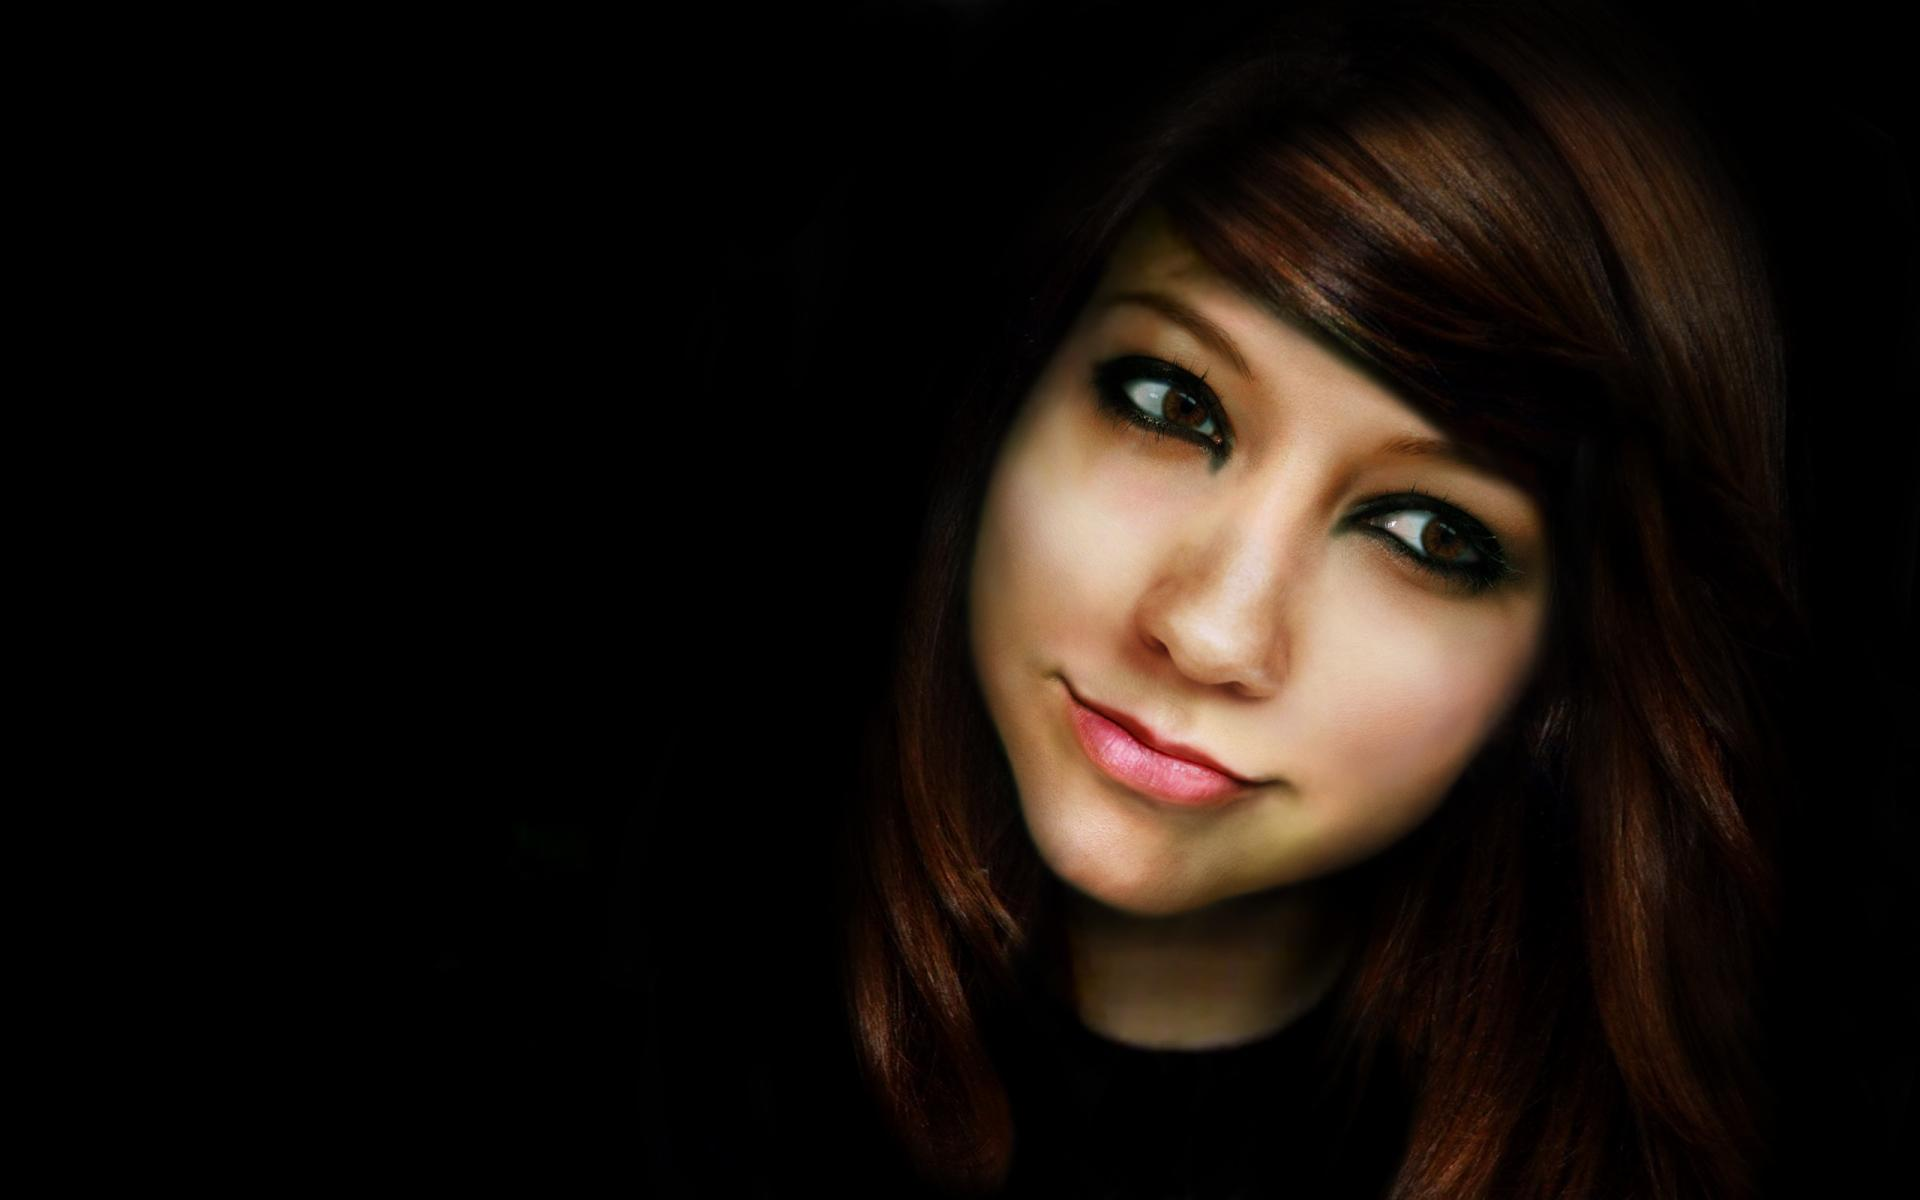 Boxxy at 1152 x 864 size wallpapers HD quality